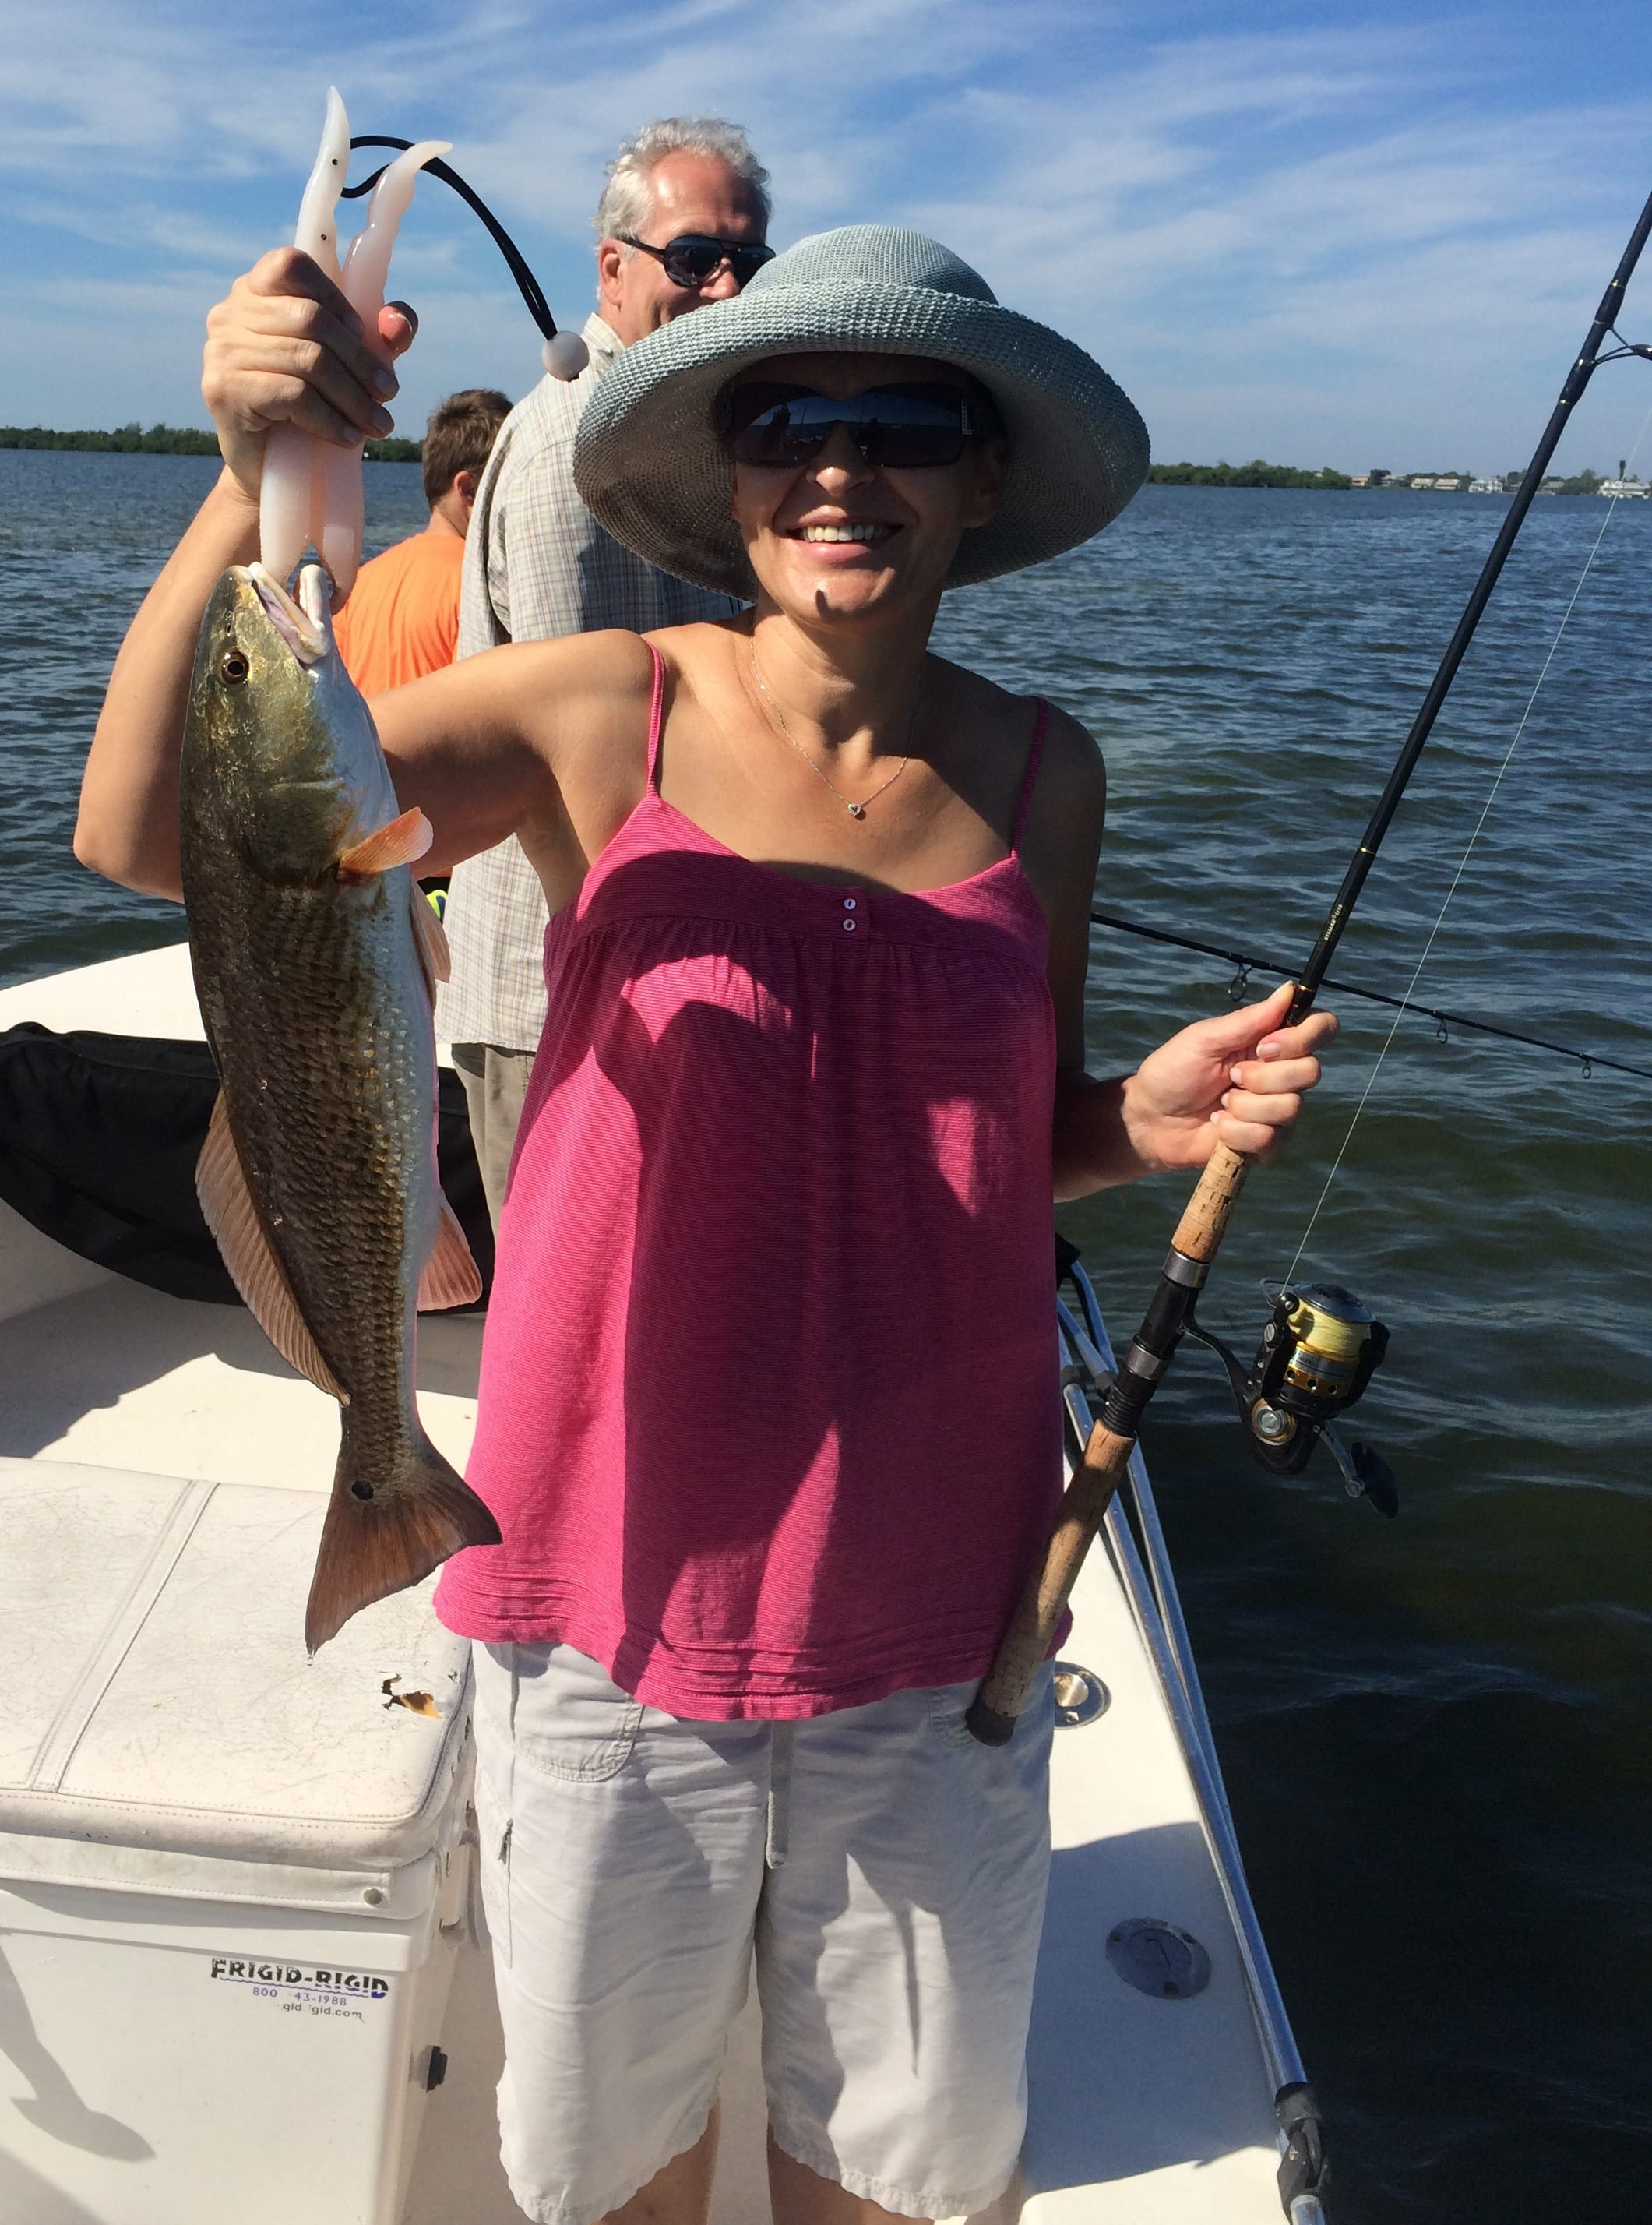 Fort myers fishing report 10 25 14 more redfish for Ft myers fishing report